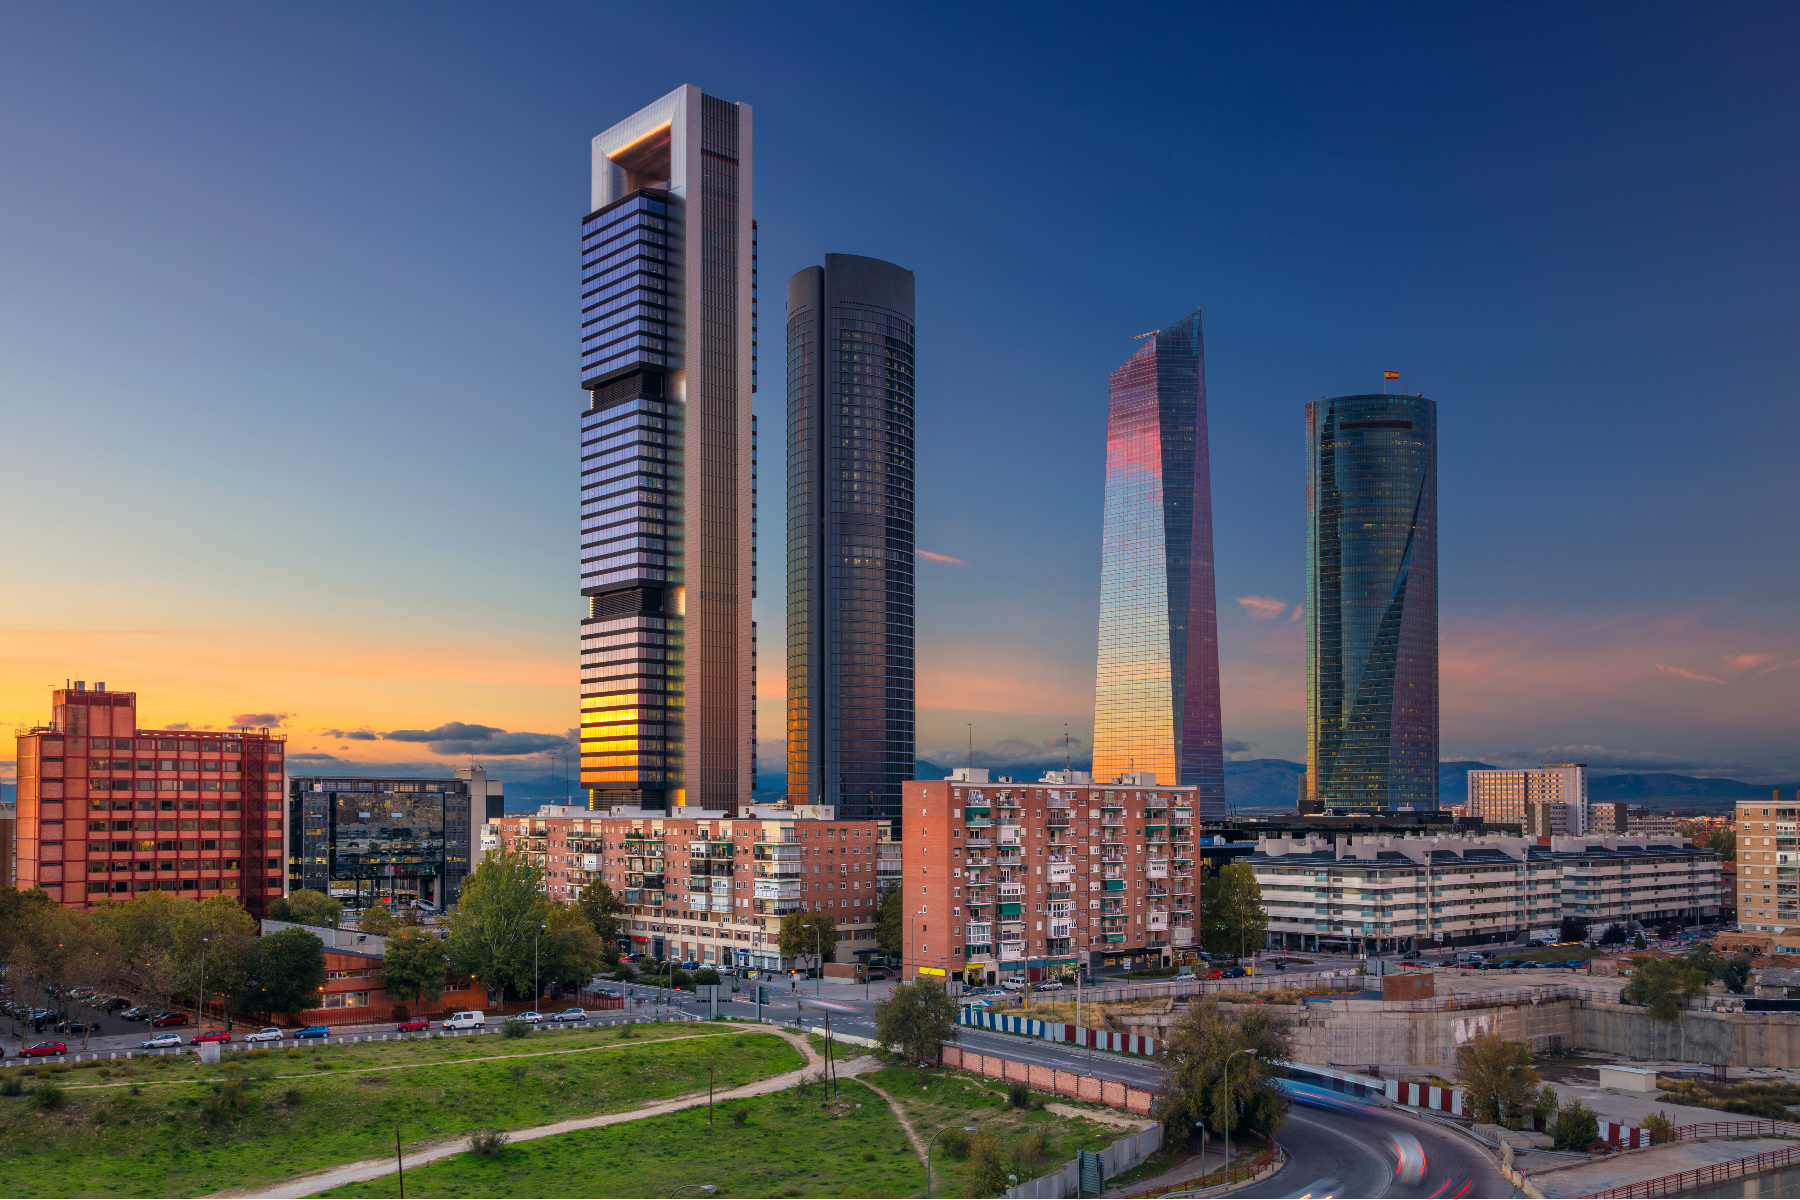 Madrid business district